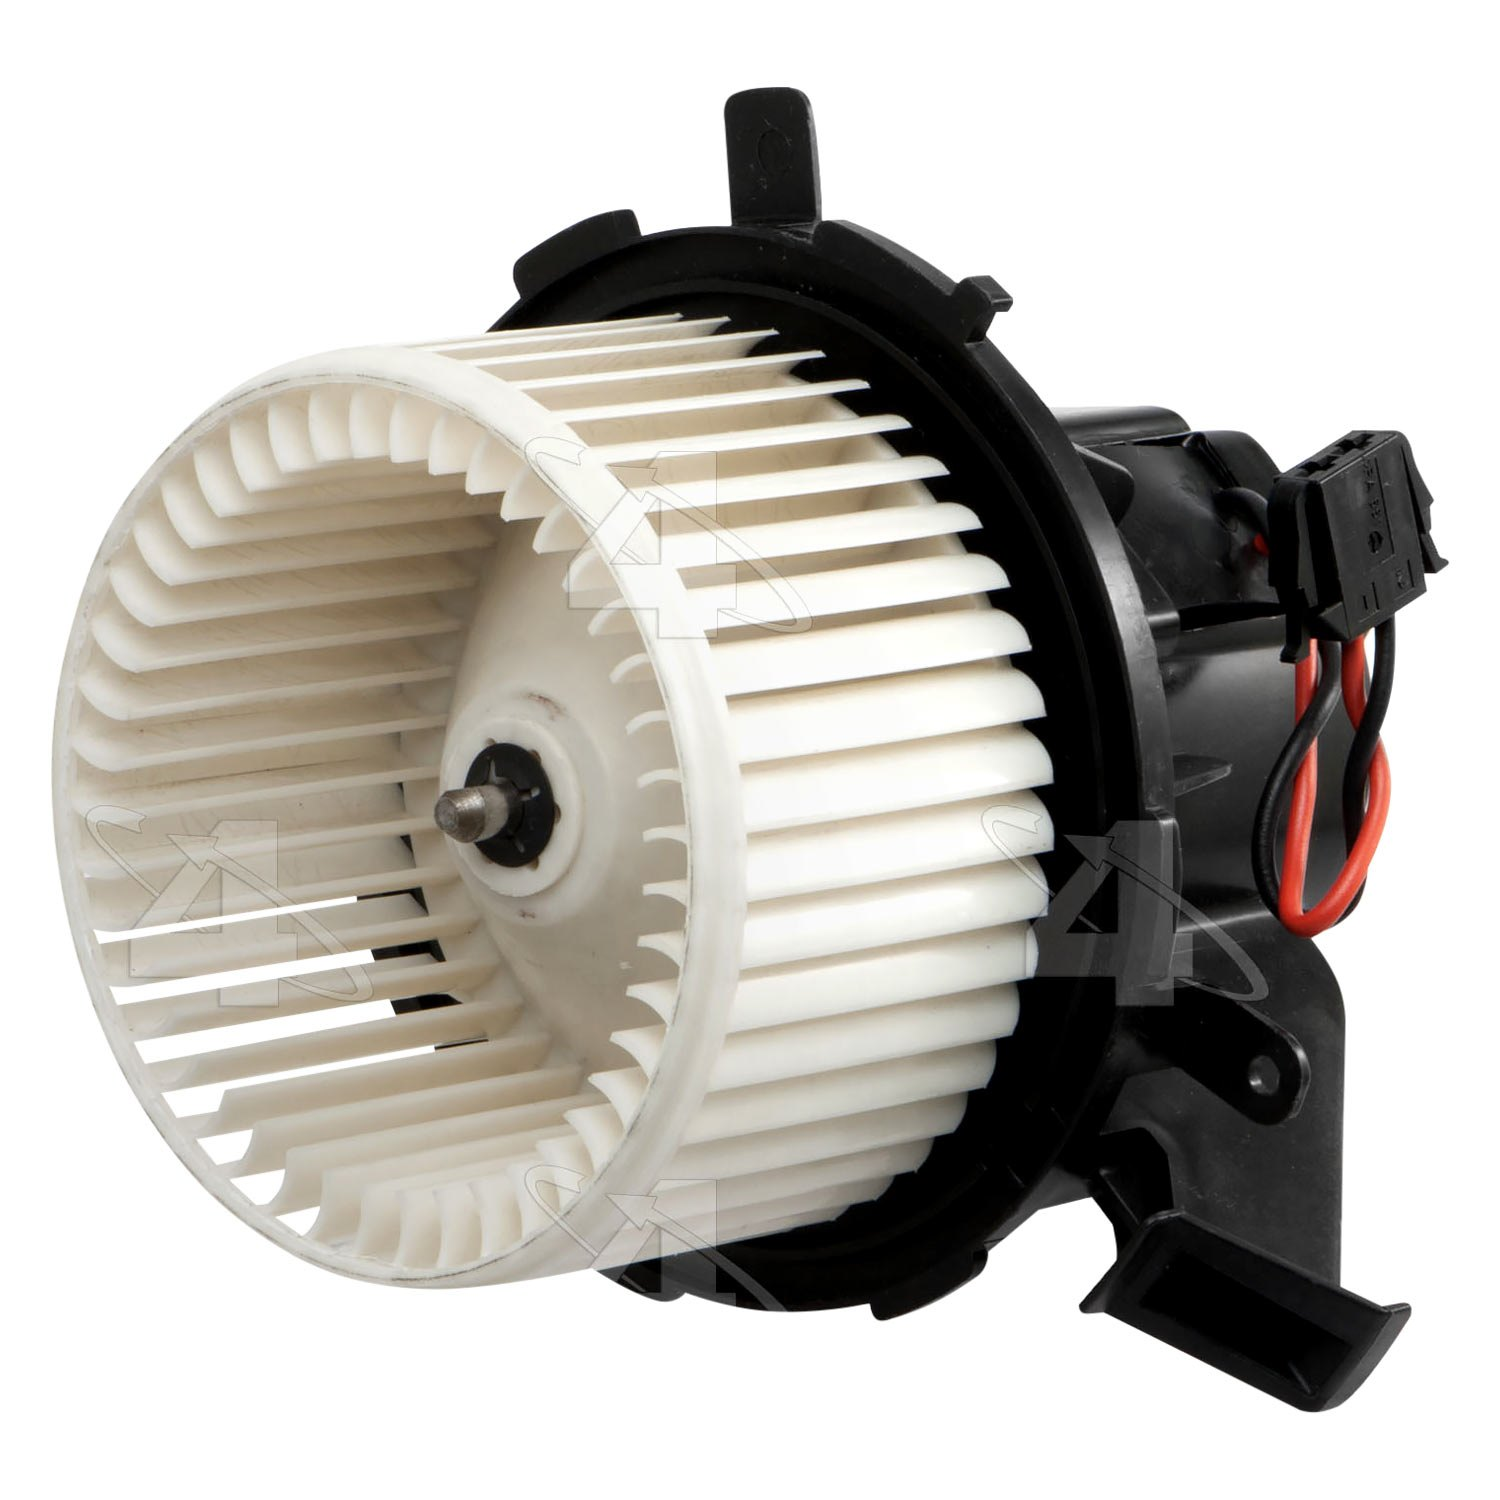 Four seasons 75031 hvac blower motor with wheel for Furnace blower motor replacement cost